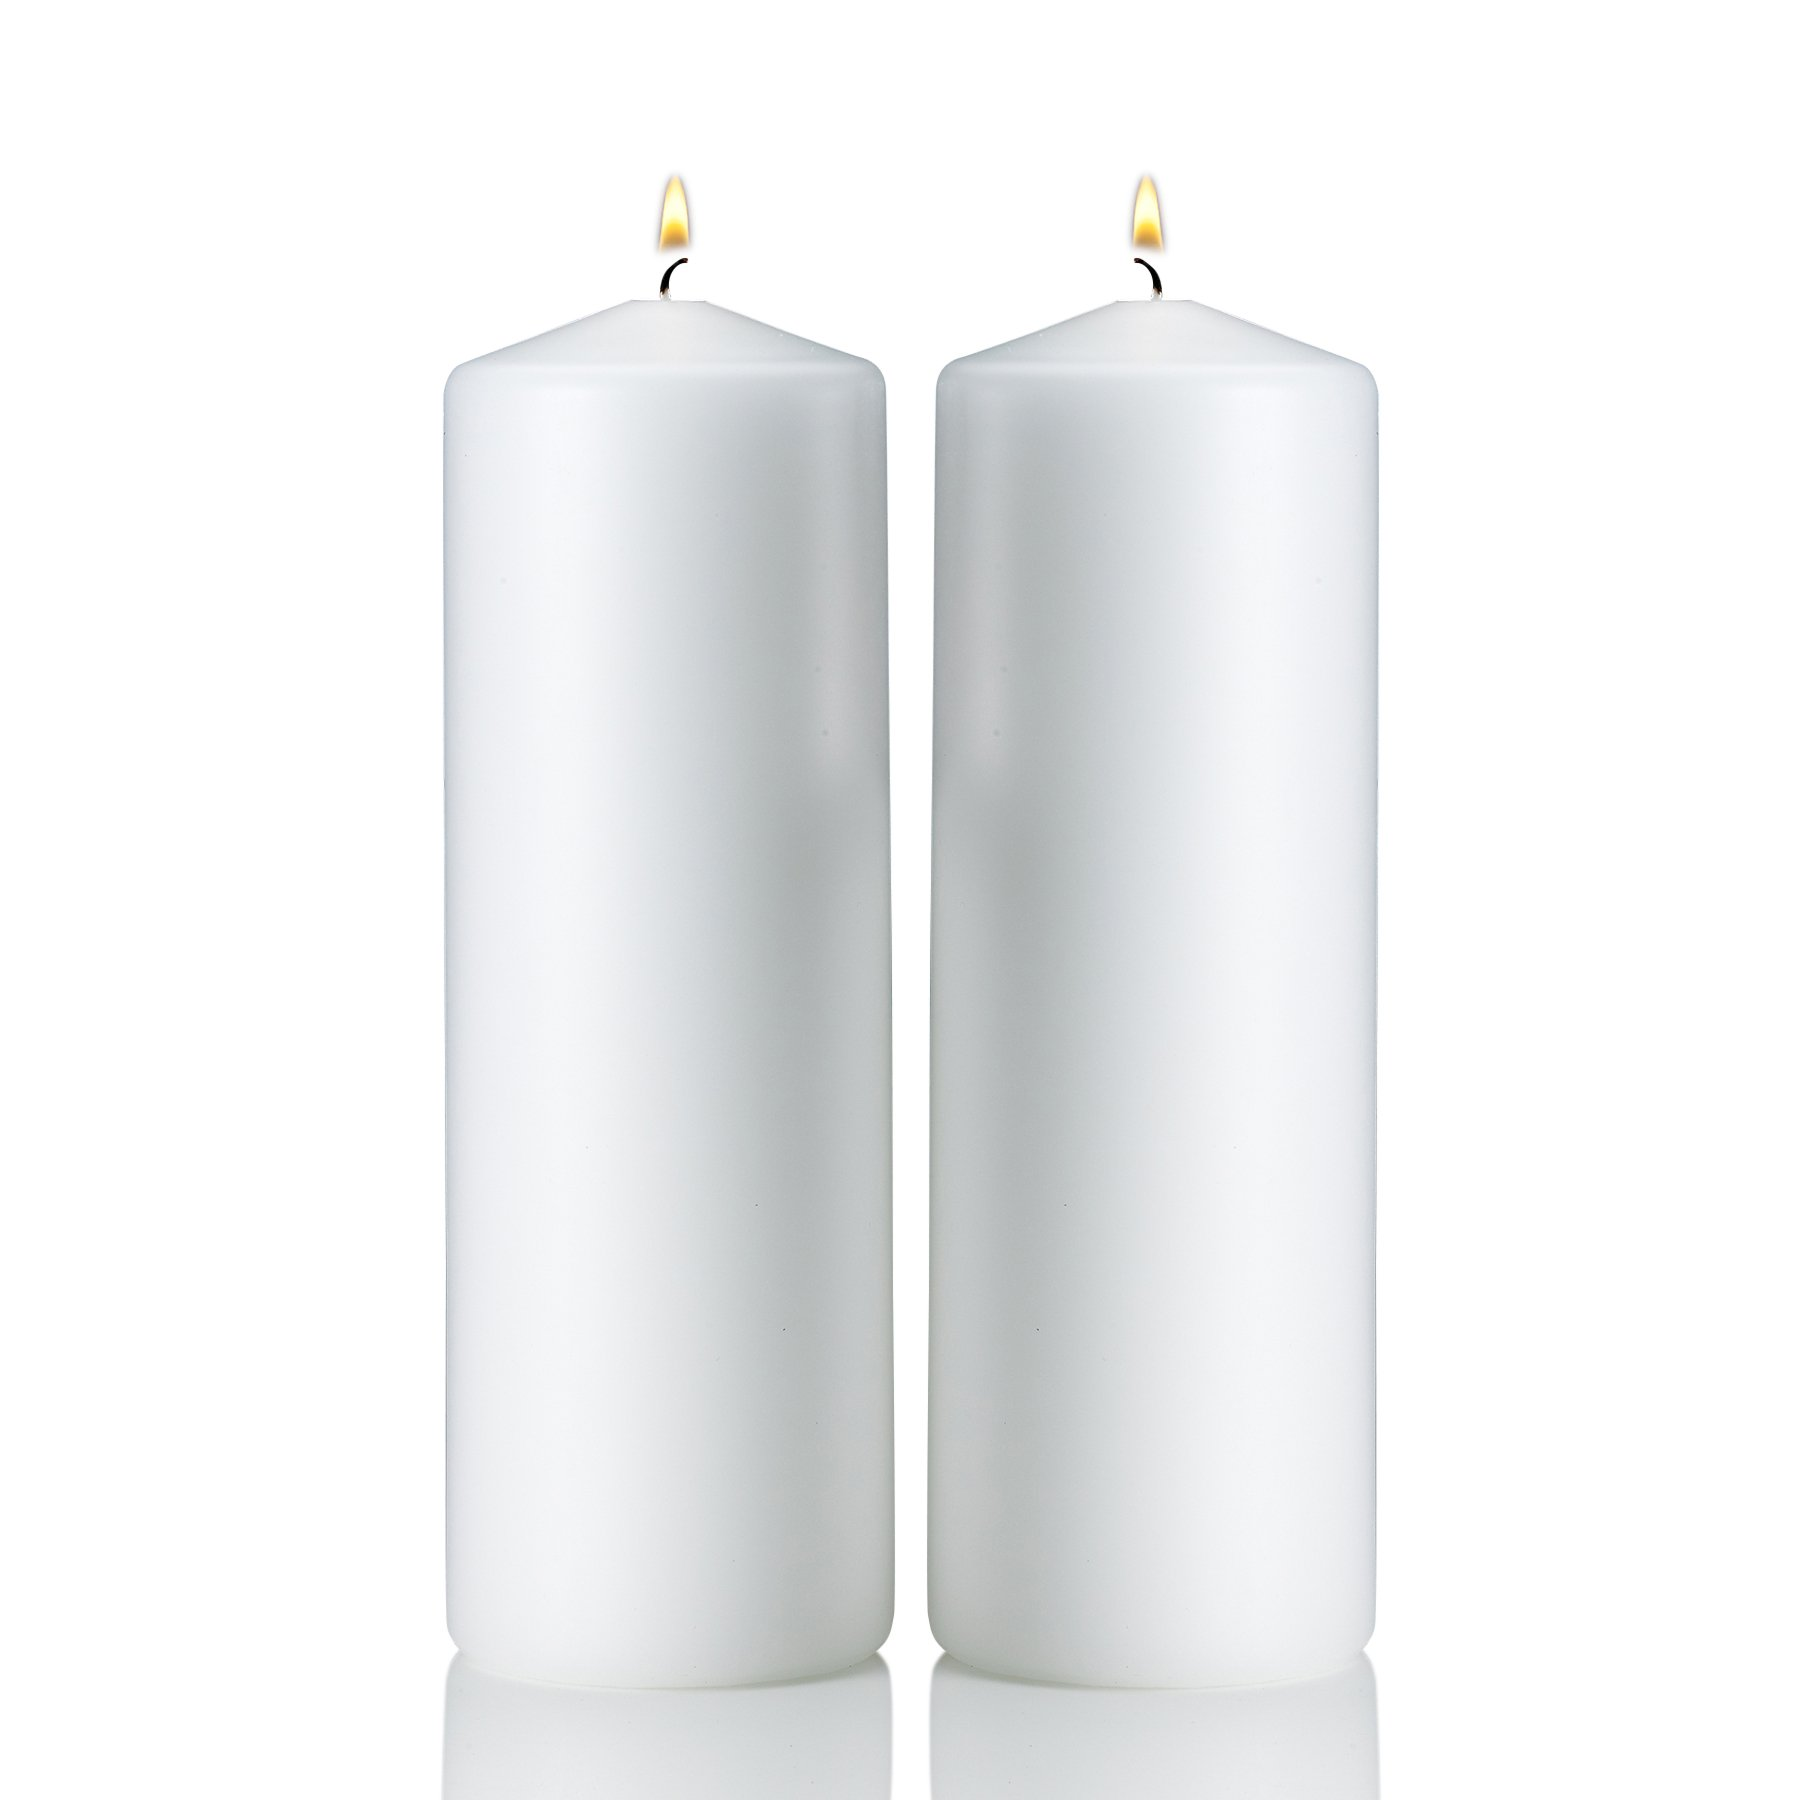 White Pillar Candles - Set of 2 Unscented Candles - 9 inch Tall, 3 inch Thick - 90 hour Clean Burn Time